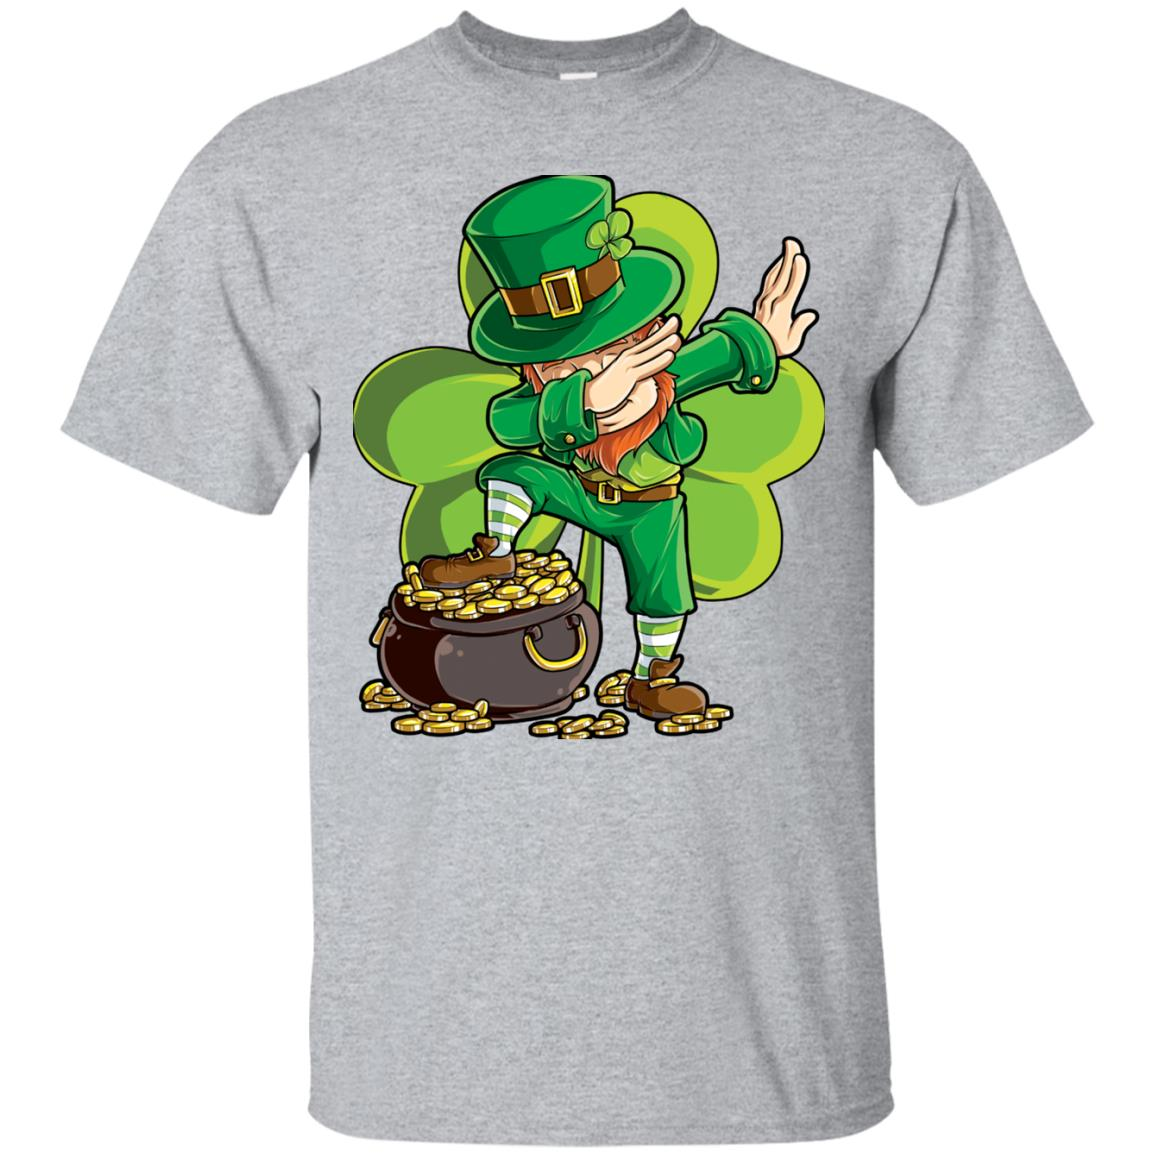 Dabbing Leprechaun Shirt St Patricks Day Kids Boys Women Men 99promocode